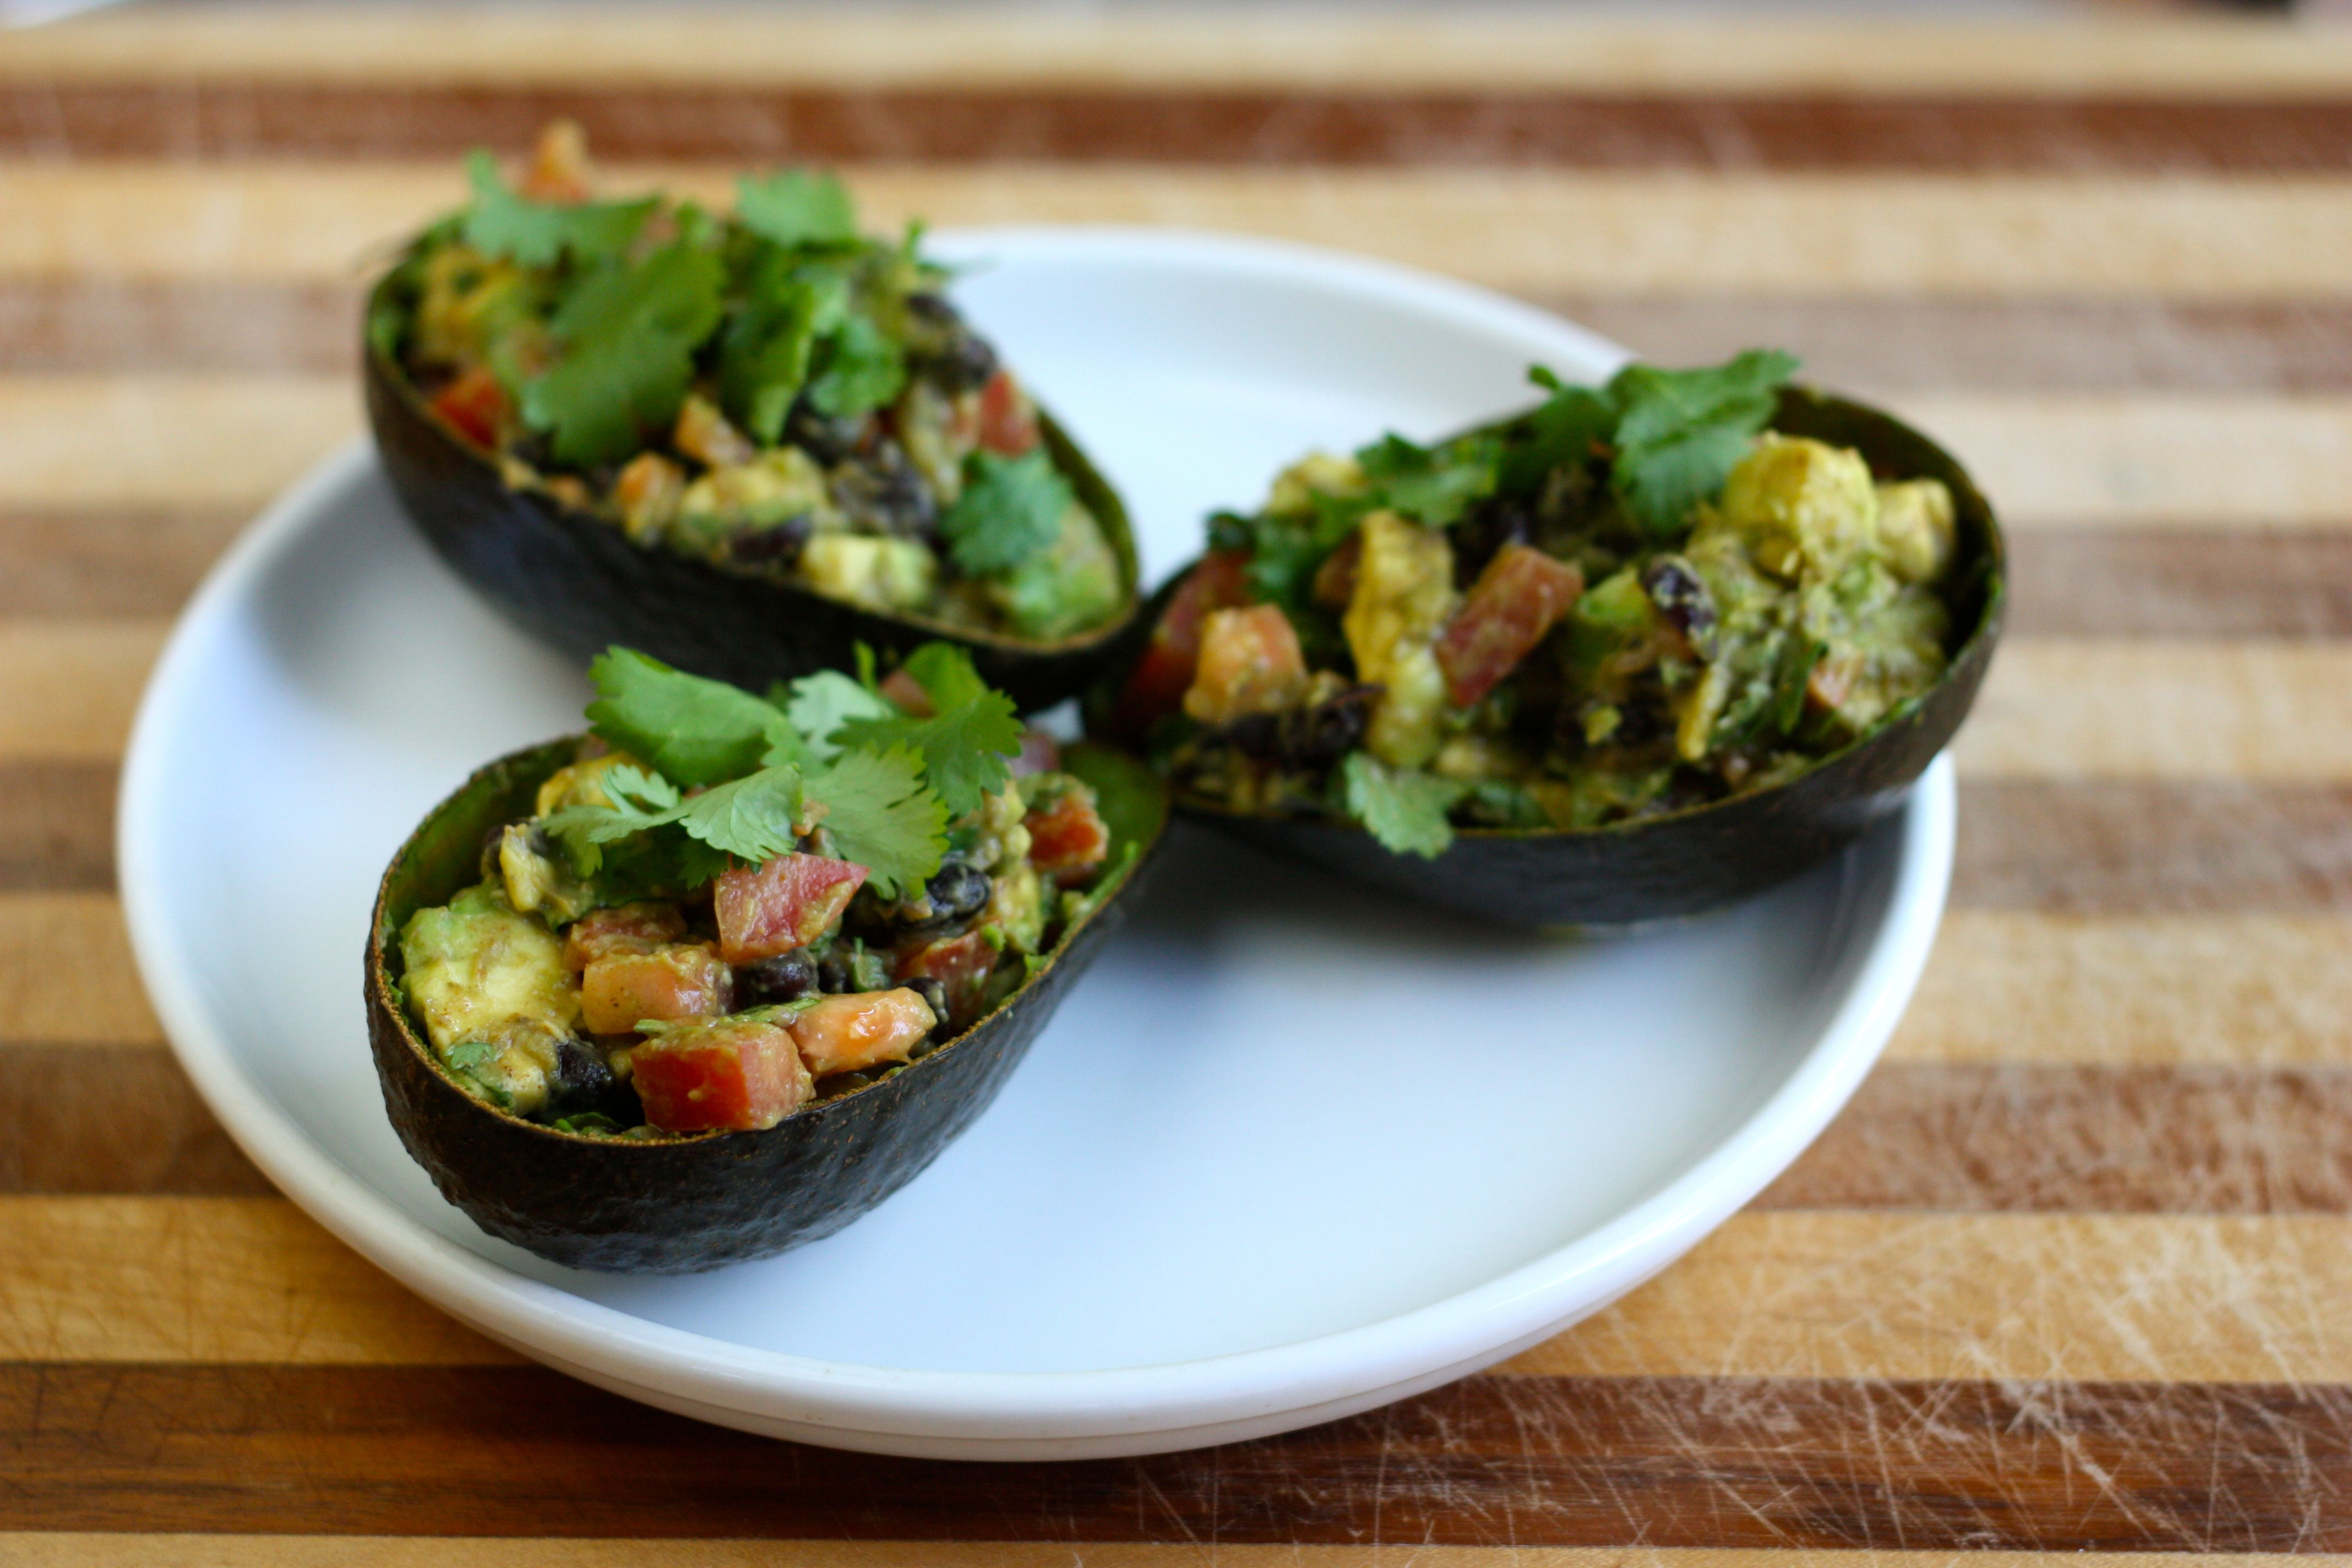 Cinco de mayo texmex stuffed avocados blissful and fit blissful texmex stuffed avocados mexican food forumfinder Image collections